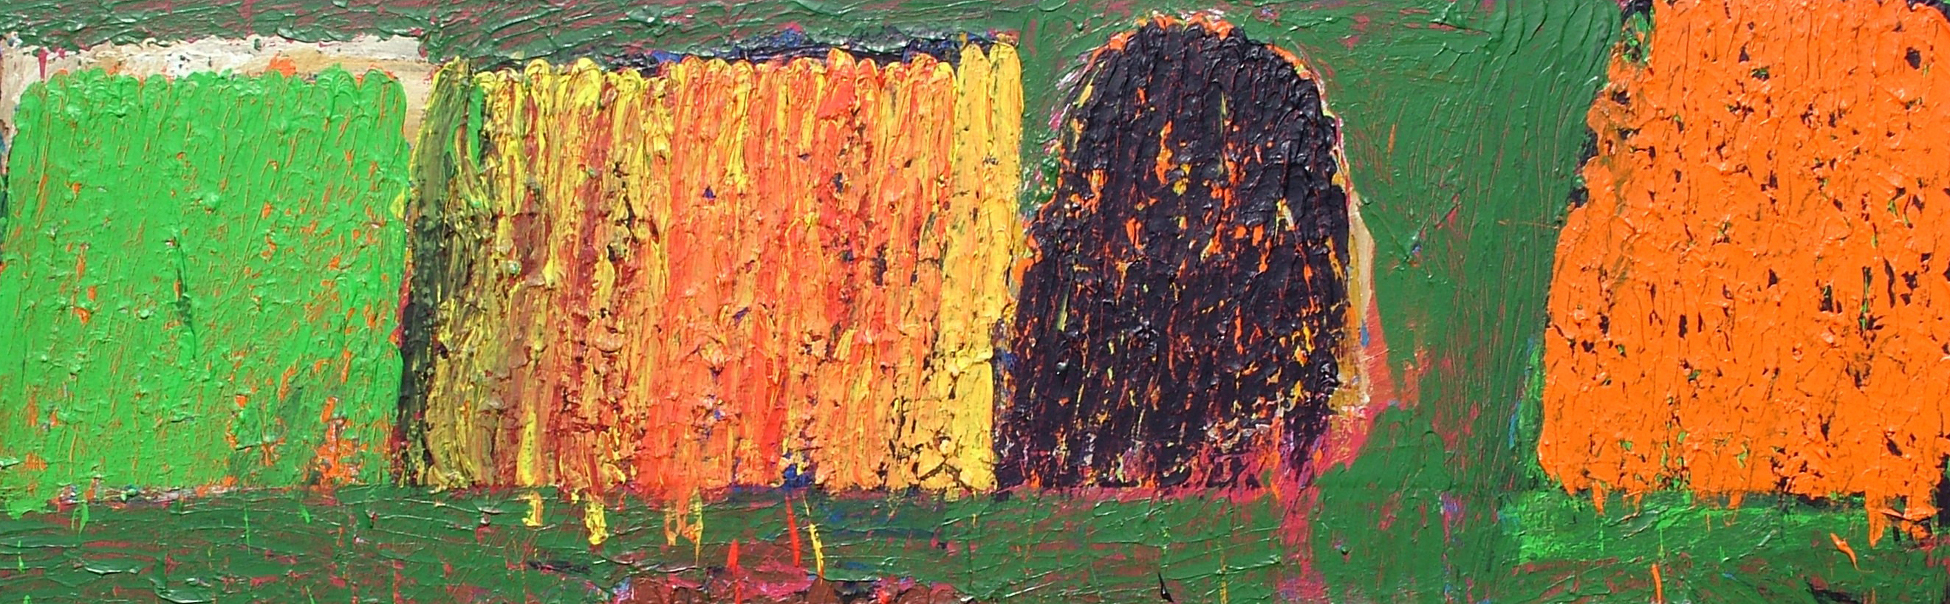 A photo of an abstract painting by Thomas Barron